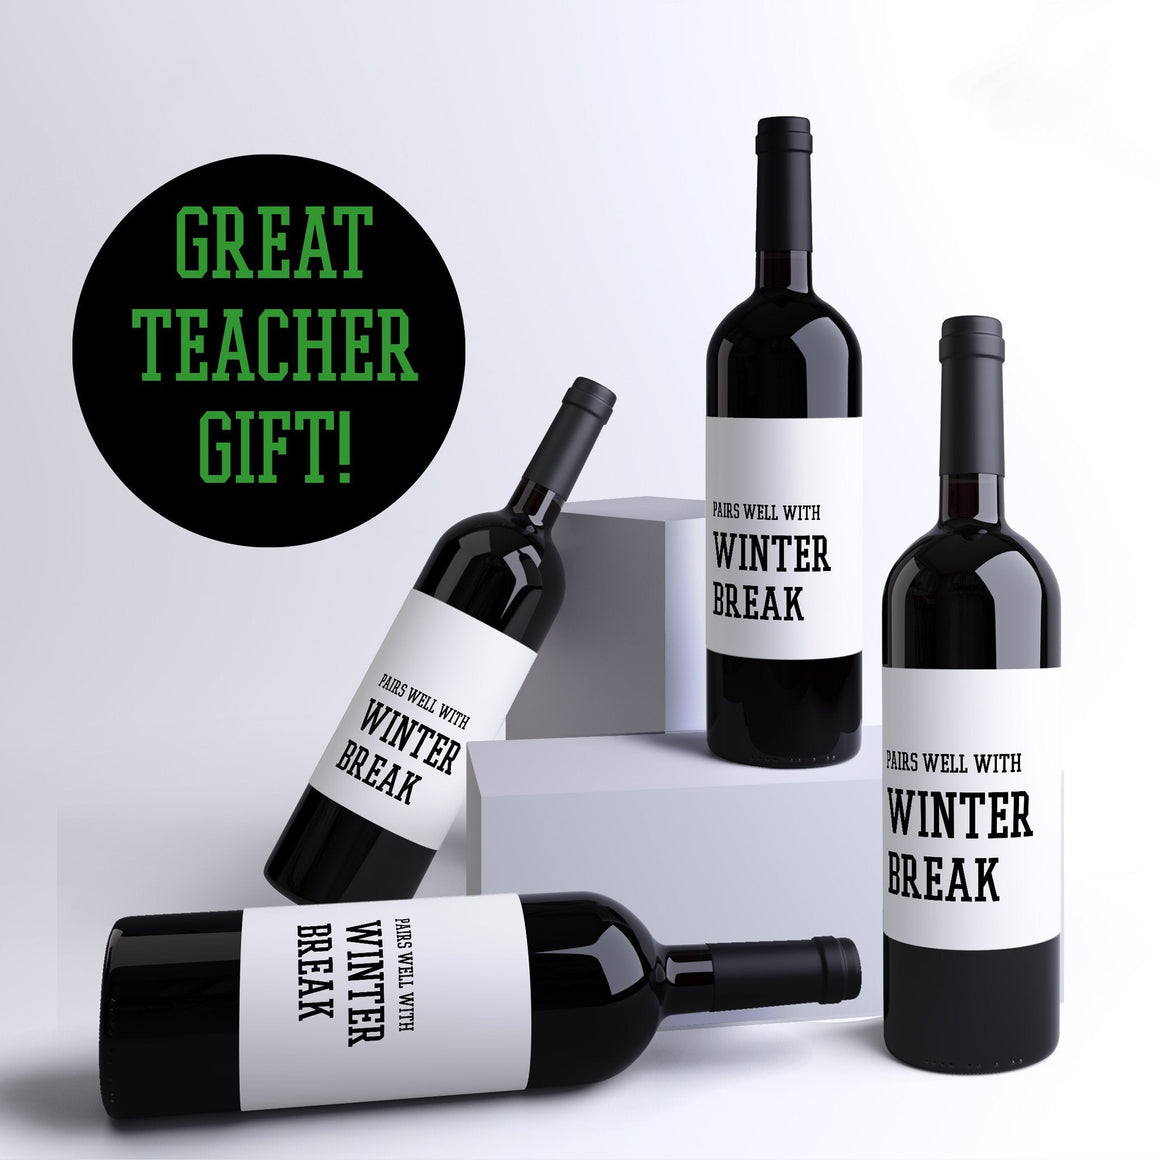 Pairs Well With Winter Break School Teacher Gift Wine Labels - 4 Pack